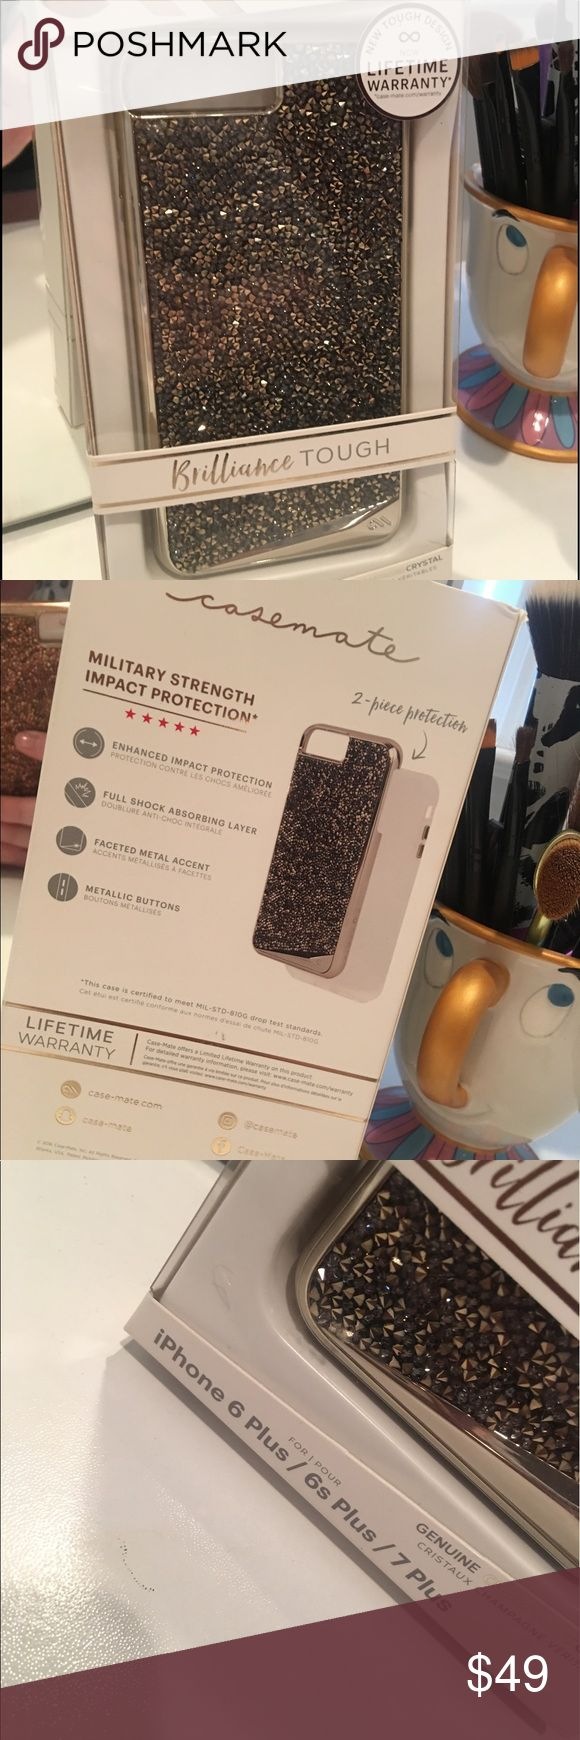 """❤️SOLD❤️ Case-Mate Brilliance TOUGH for iPhone Brand new, still sealed in package Case Mate Brilliance TOUGH case for iPhone 6/6s/7 PLUS. (It will fit all three). The pictures really don't do the case justice, it is absolutely beautiful and so sparkley!! The color is """"champagne"""", but it's really silver. This is also the tough version of the case and comes with a lifetime warranty. These retail for $80. If you have any questions, feel free to ask. Thank you for looking! (Due to Posh fees…"""